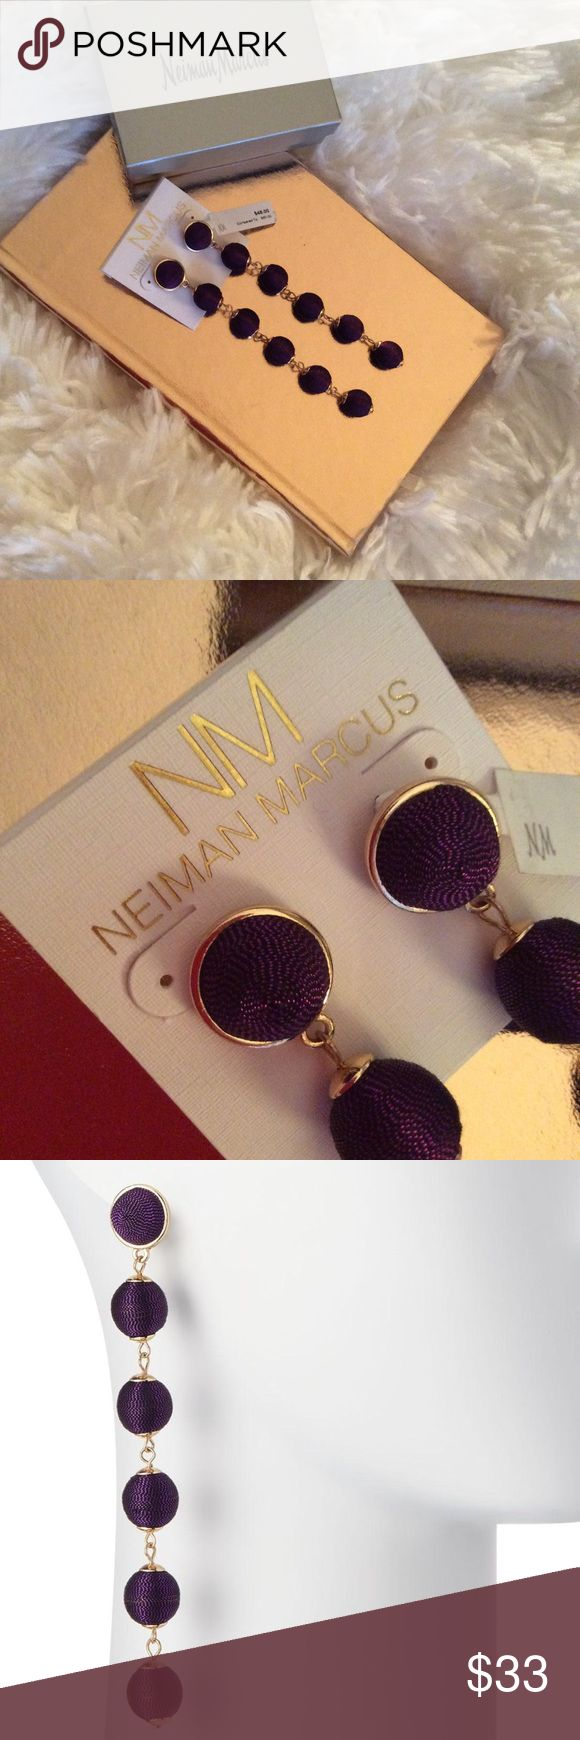 Neiman Marcus Purple Thread Wrapped Ball Earrings Pierced post back earrings.  Shiny yellow golden hardware.  Amethyst color.  Approximately 4.5 inches long.  Six thread wrapped drops.  Beautiful statement earrings.  Original cost $60.  Sale price $45. Neiman Marcus Jewelry Earrings #BallEarrings